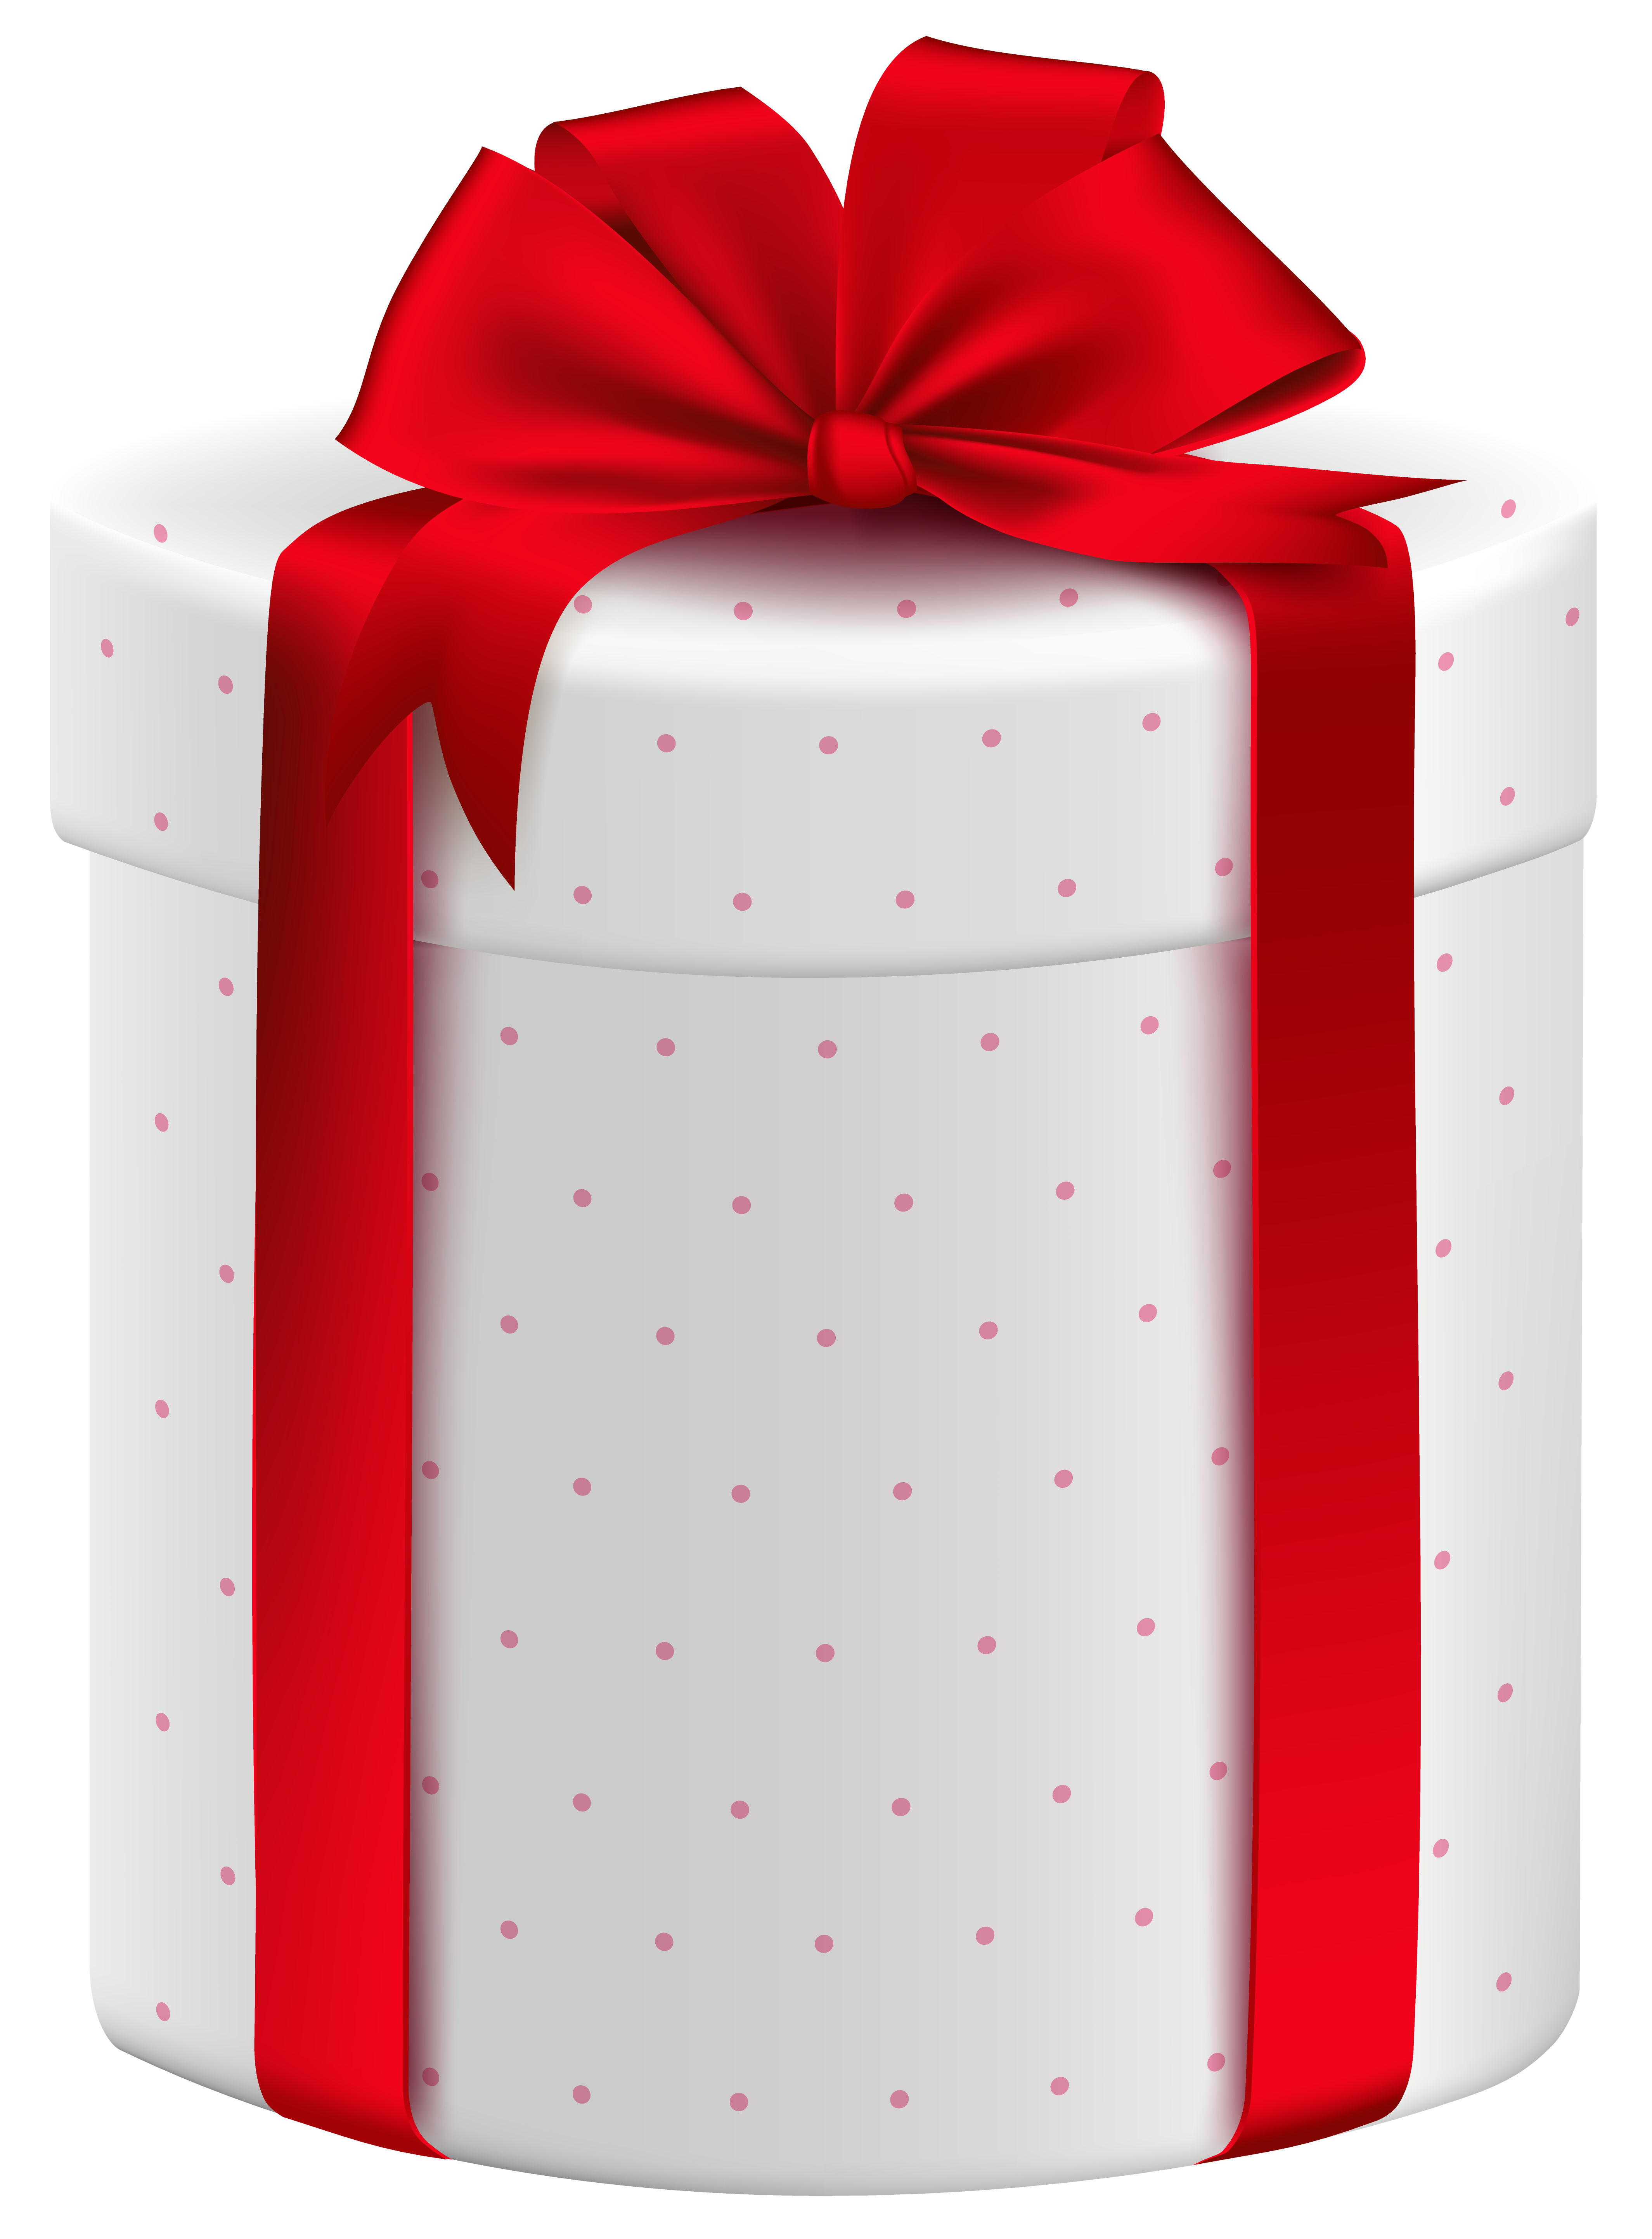 Christmas box clipart image royalty free White Gift Box with Red Bow PNG Clipart Image | What's In The Box ... image royalty free